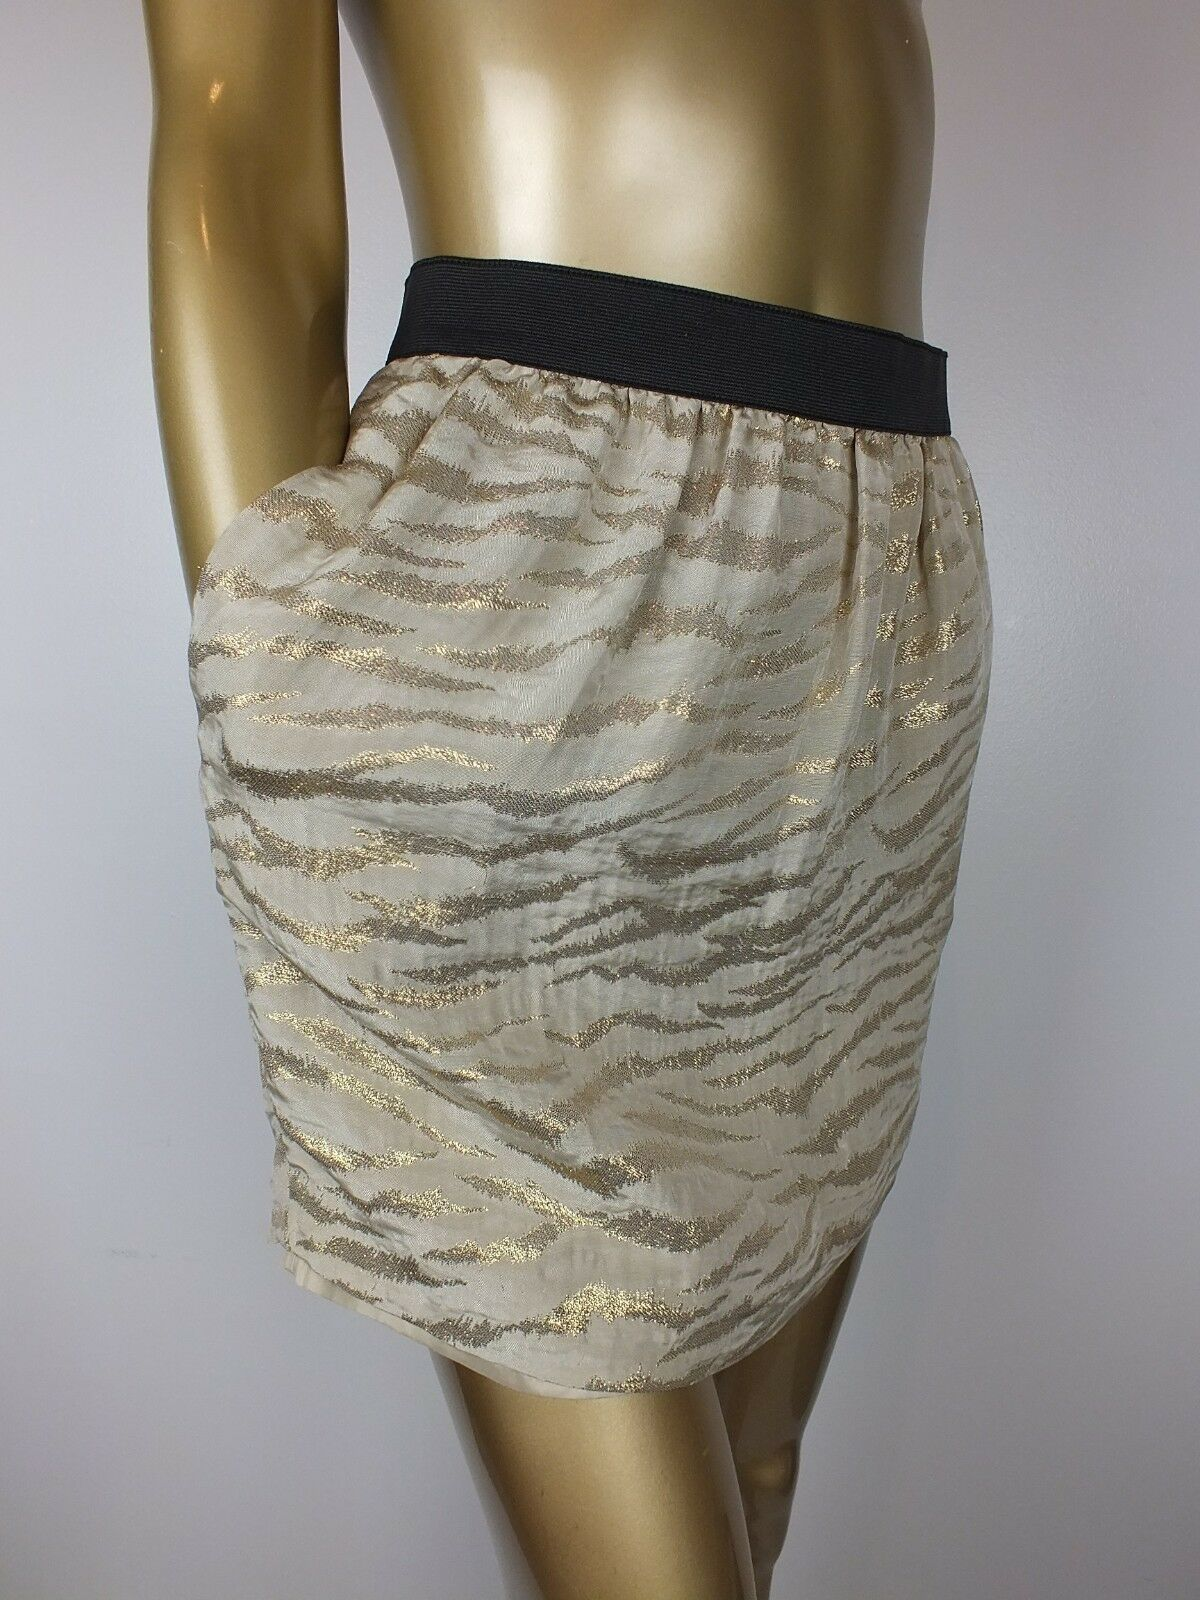 PHILLIP LIM SKIRT SILK METALLIC gold DESIGNER MINI DRESSY SKIRT 6